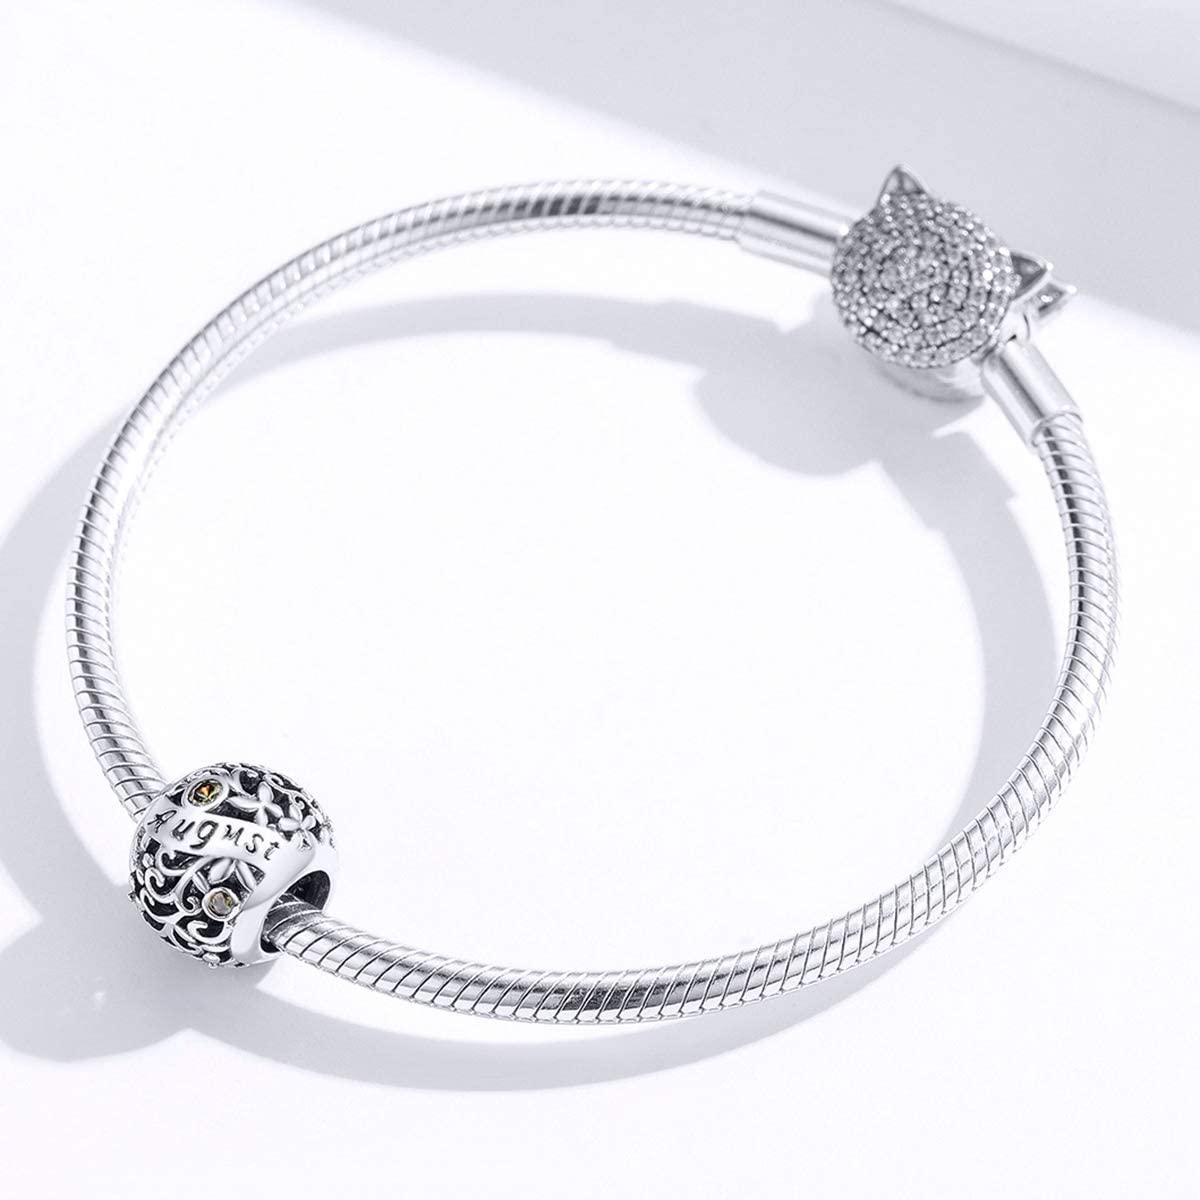 retro bracelet for woman gift for woman Sterling silver bracelet oriental silver bangle birthday gift for friend with natural stone